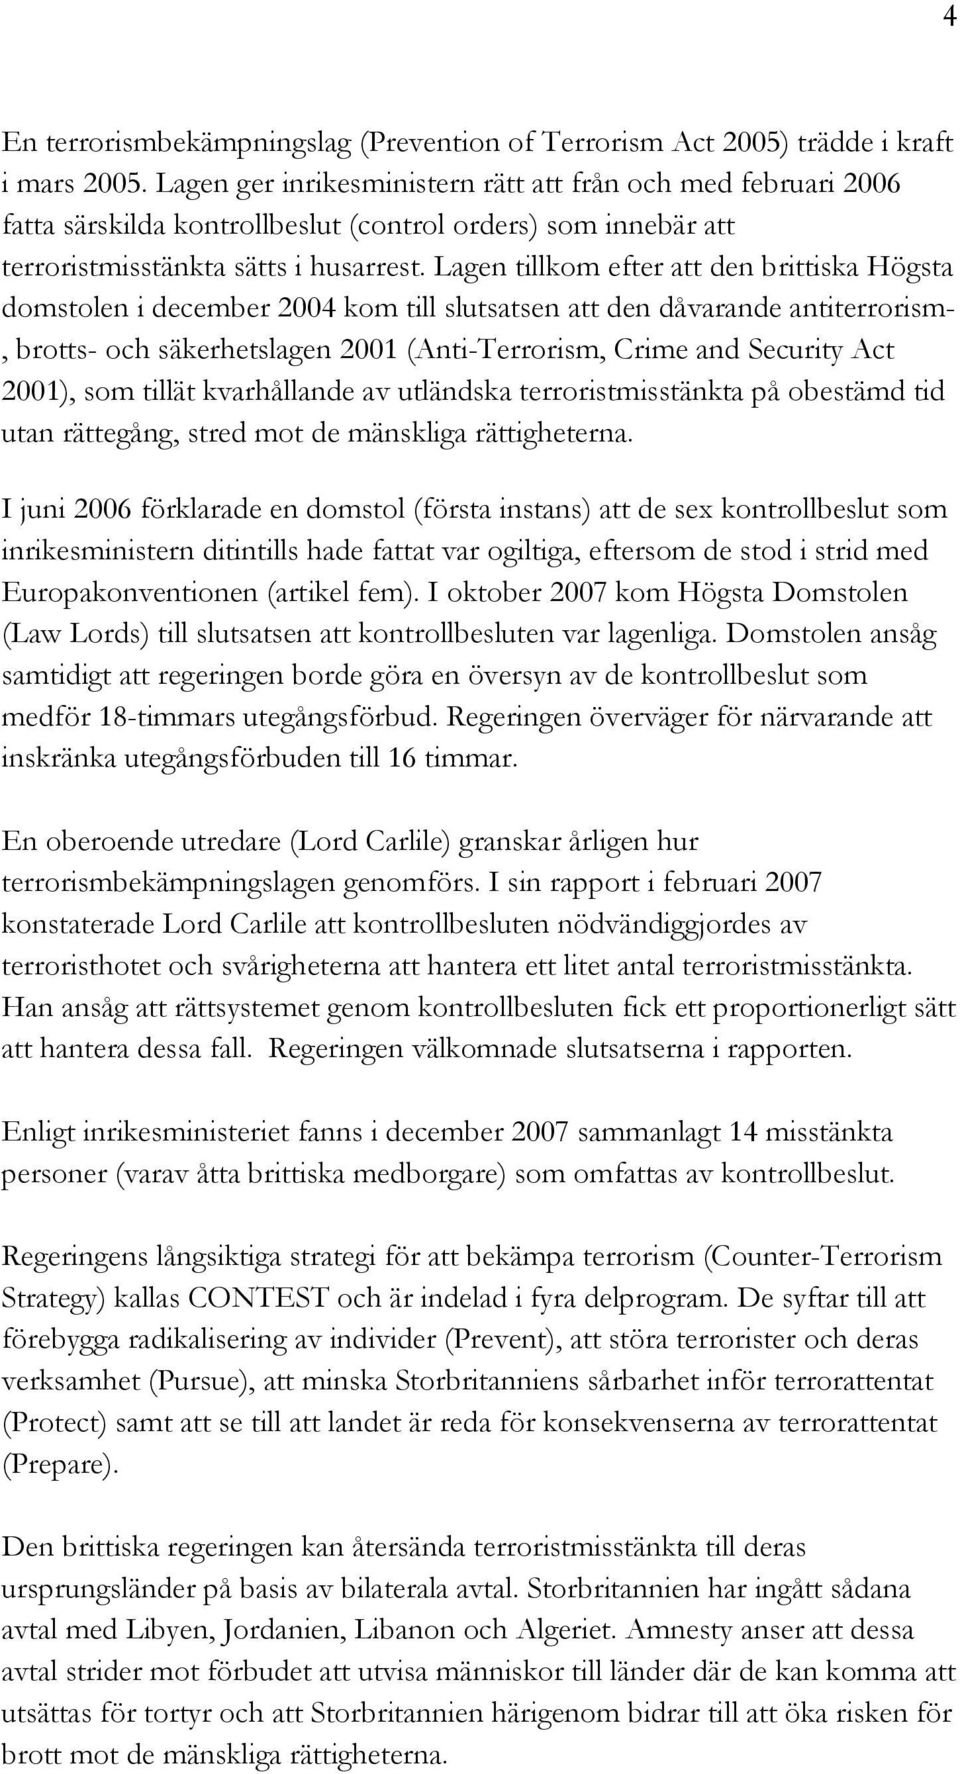 Lagen tillkom efter att den brittiska Högsta domstolen i december 2004 kom till slutsatsen att den dåvarande antiterrorism-, brotts- och säkerhetslagen 2001 (Anti-Terrorism, Crime and Security Act